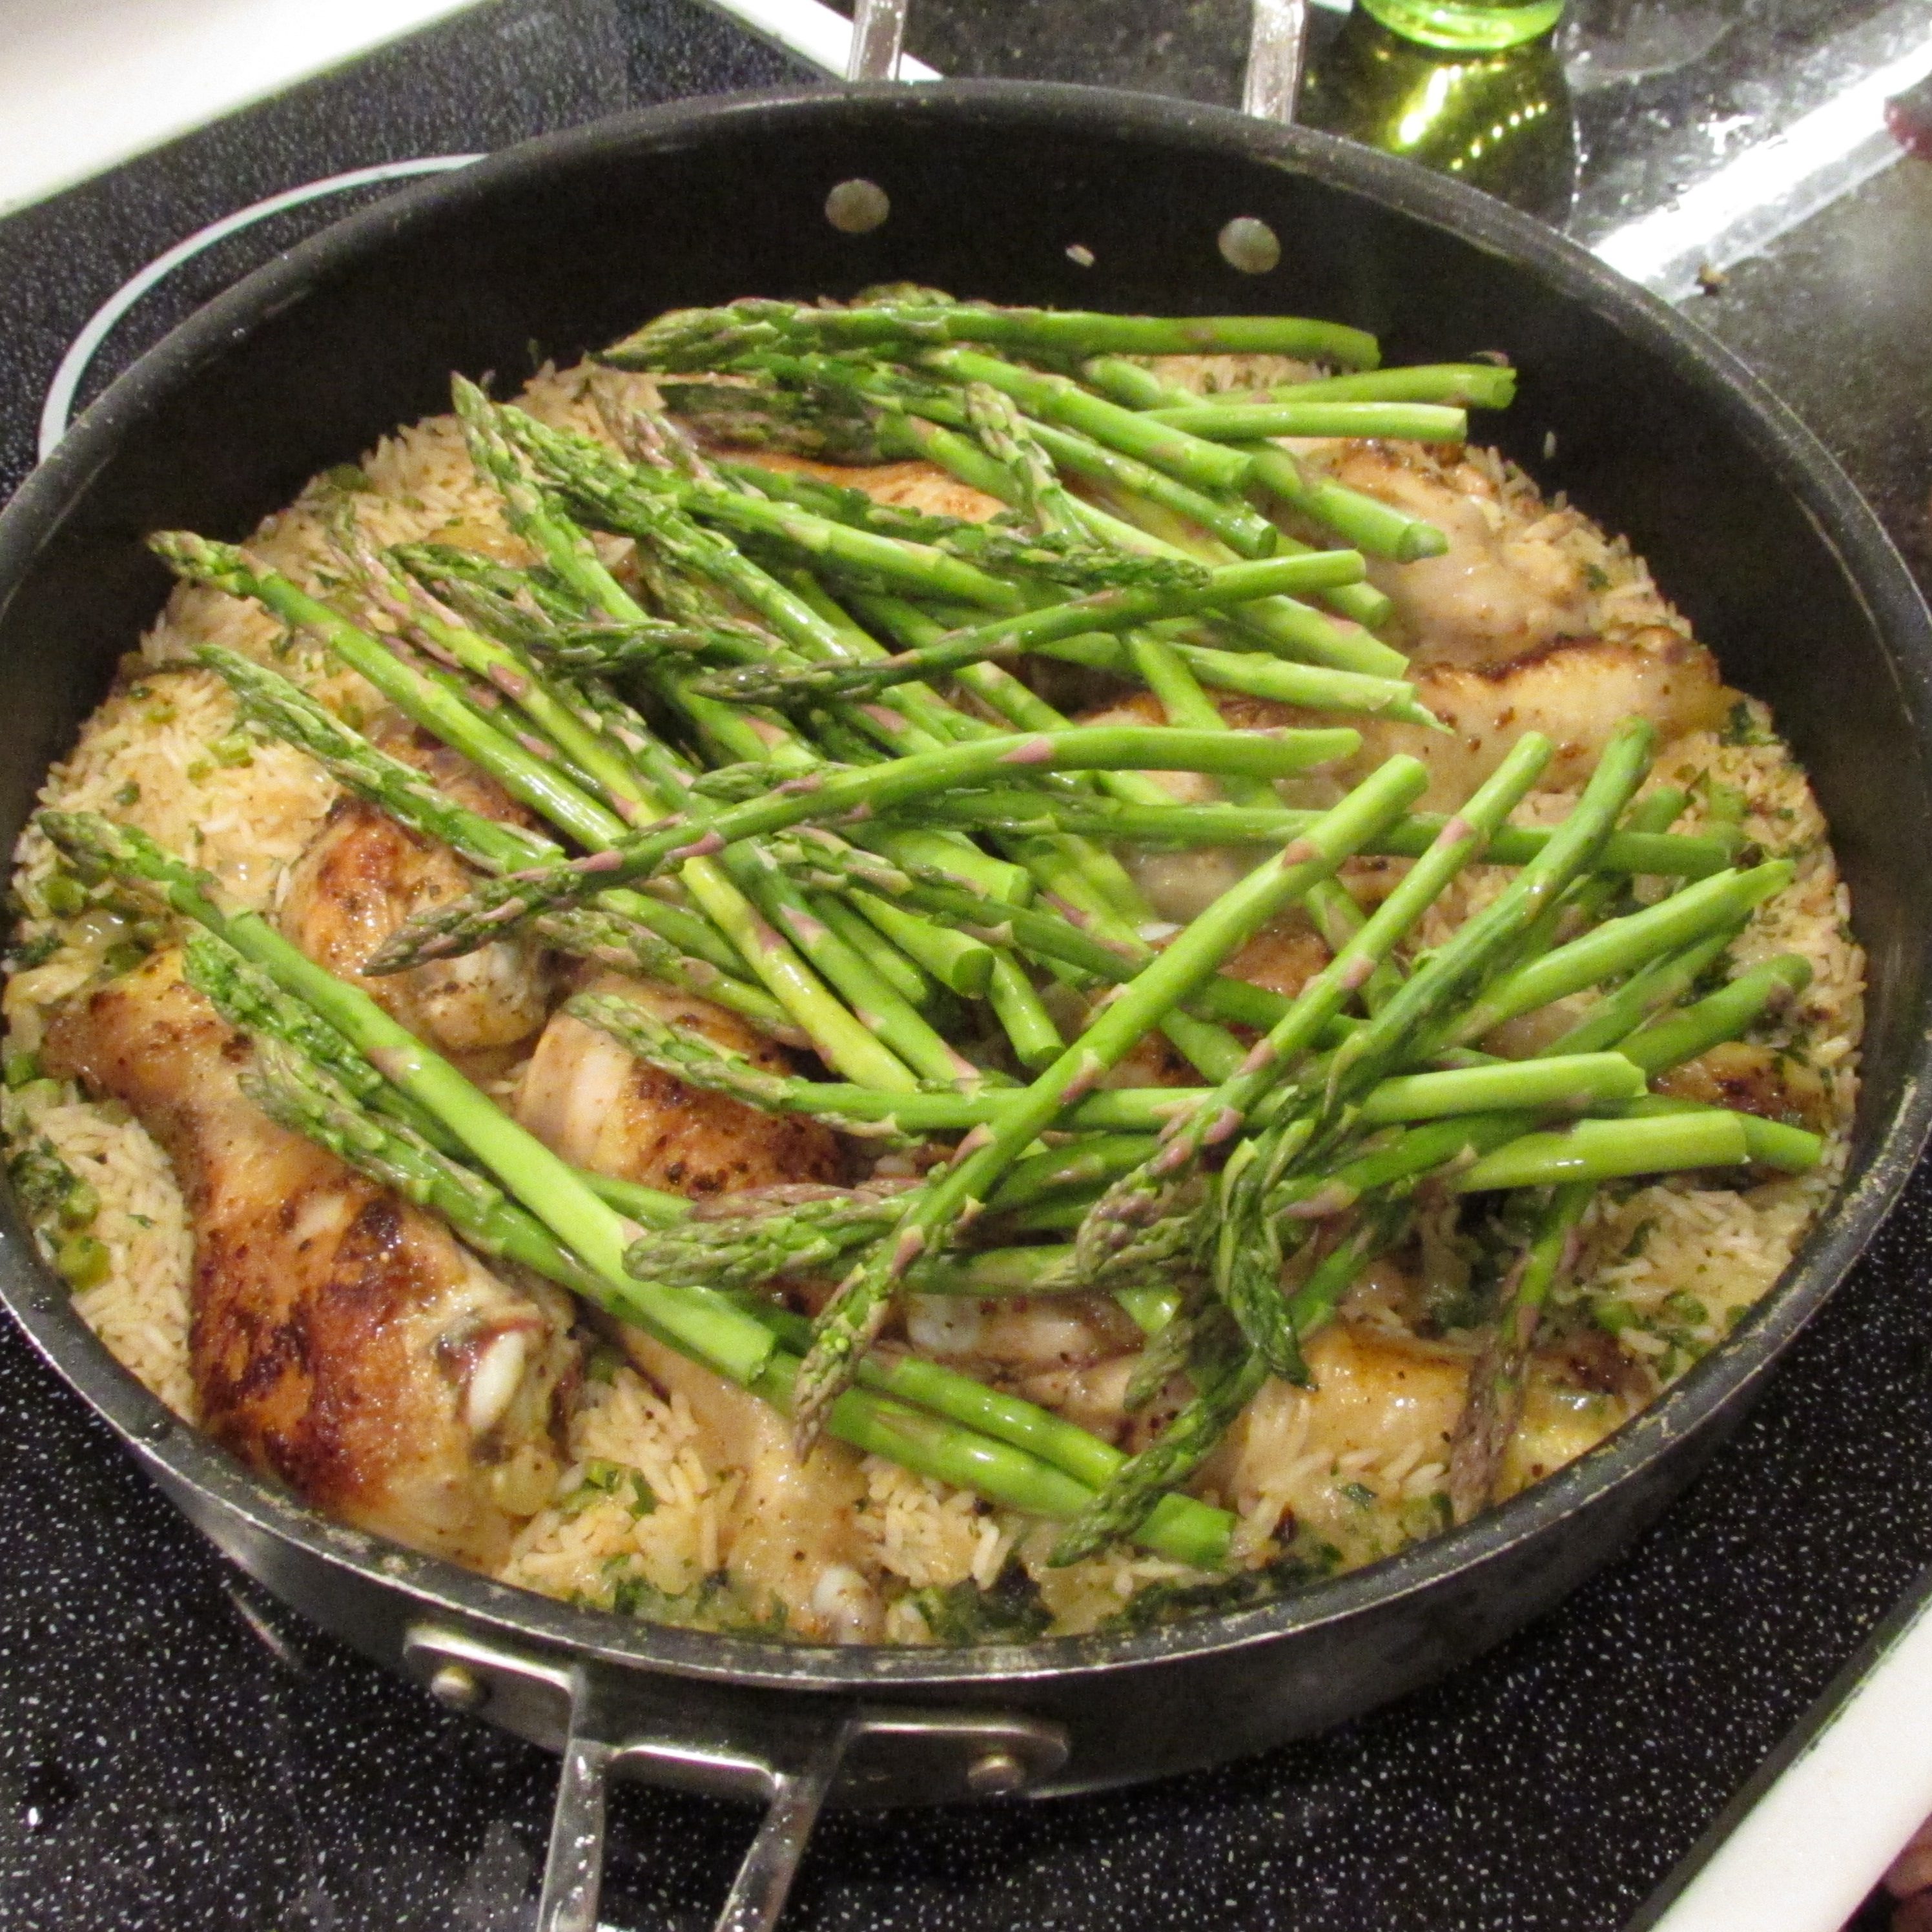 Put Drumsticks Back In Pan, Cover And Cook For Around 40 Minutes During  The Last 10 Minutes Of Cooking, Put Asparagus Tops In Pan And Cover